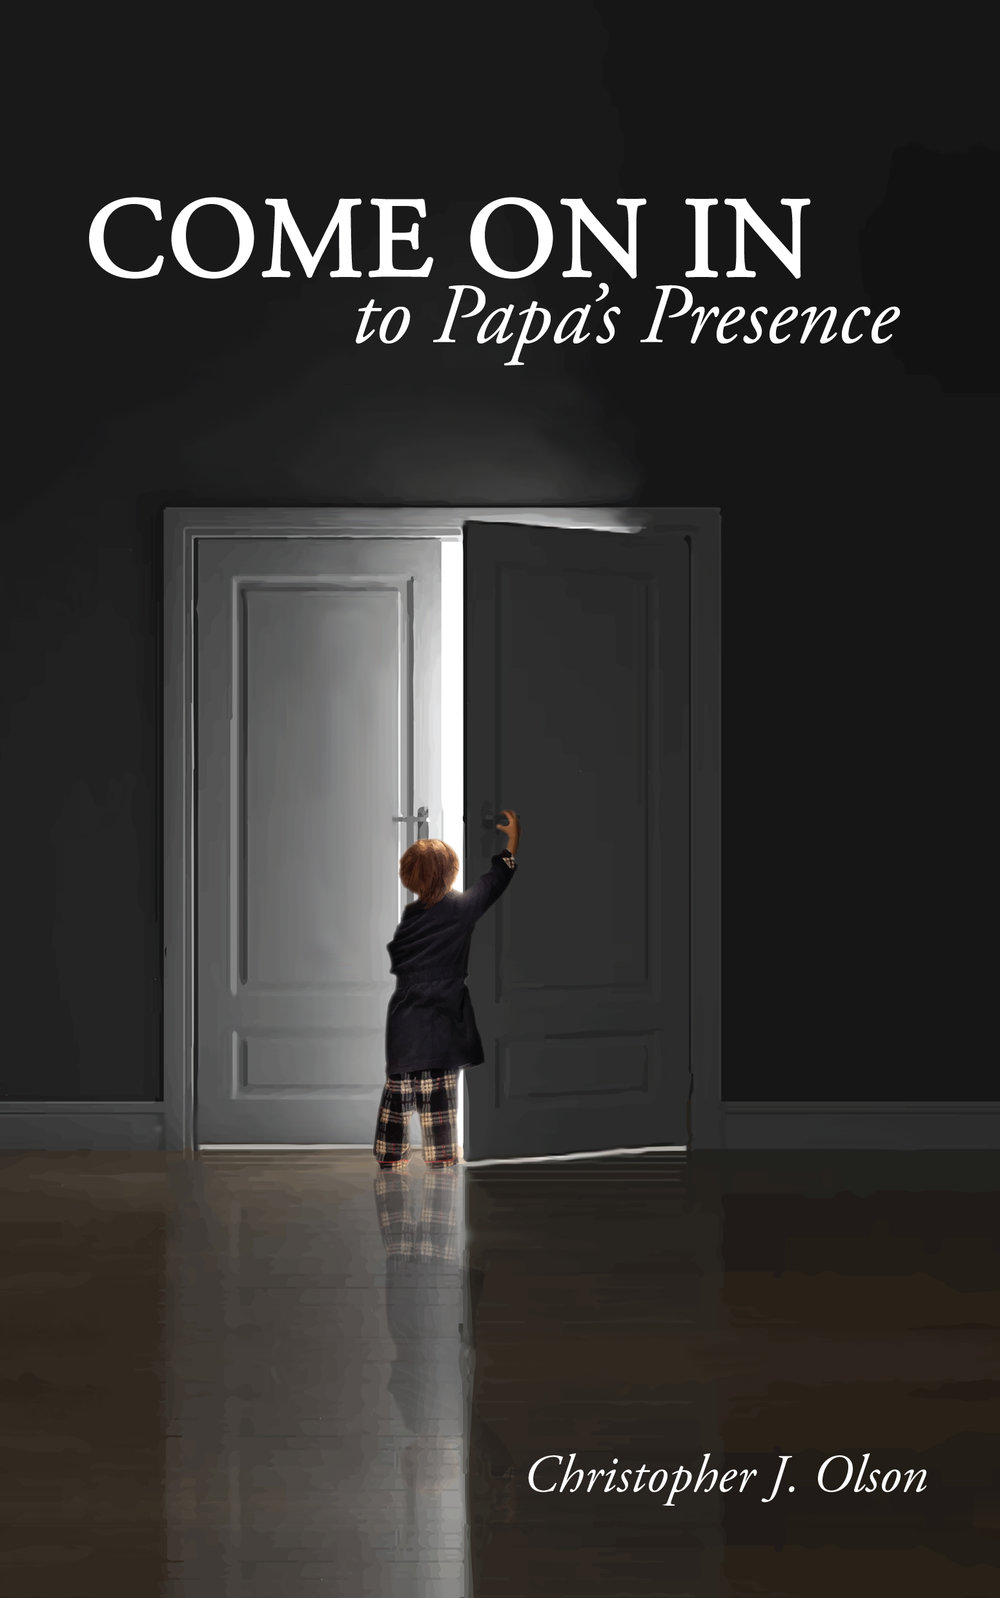 Has your heart been filled with longing to know how to enter God's presence? Has there been a desire to not just touch His presence, but learn how to cultivate and abide in His presence? Come On In To Papa's Presence teaches theologically and practically, with Scripture and stories, how to live life in Papa's presence. Through this book, allow the Holy Spirit to take you on a journey of overcoming barriers that keep us from His presence and experiencing the depths of His love.  As you go on this journey, don't just read about the encounters in this book, but invite the Lord to take you into your own experiences with Him. If you've never experienced His presence, let this be a tool in the hand of God as you begin your journey. If you're already acquainted with God's presence, let this book be an invitation to go deeper than ever before.